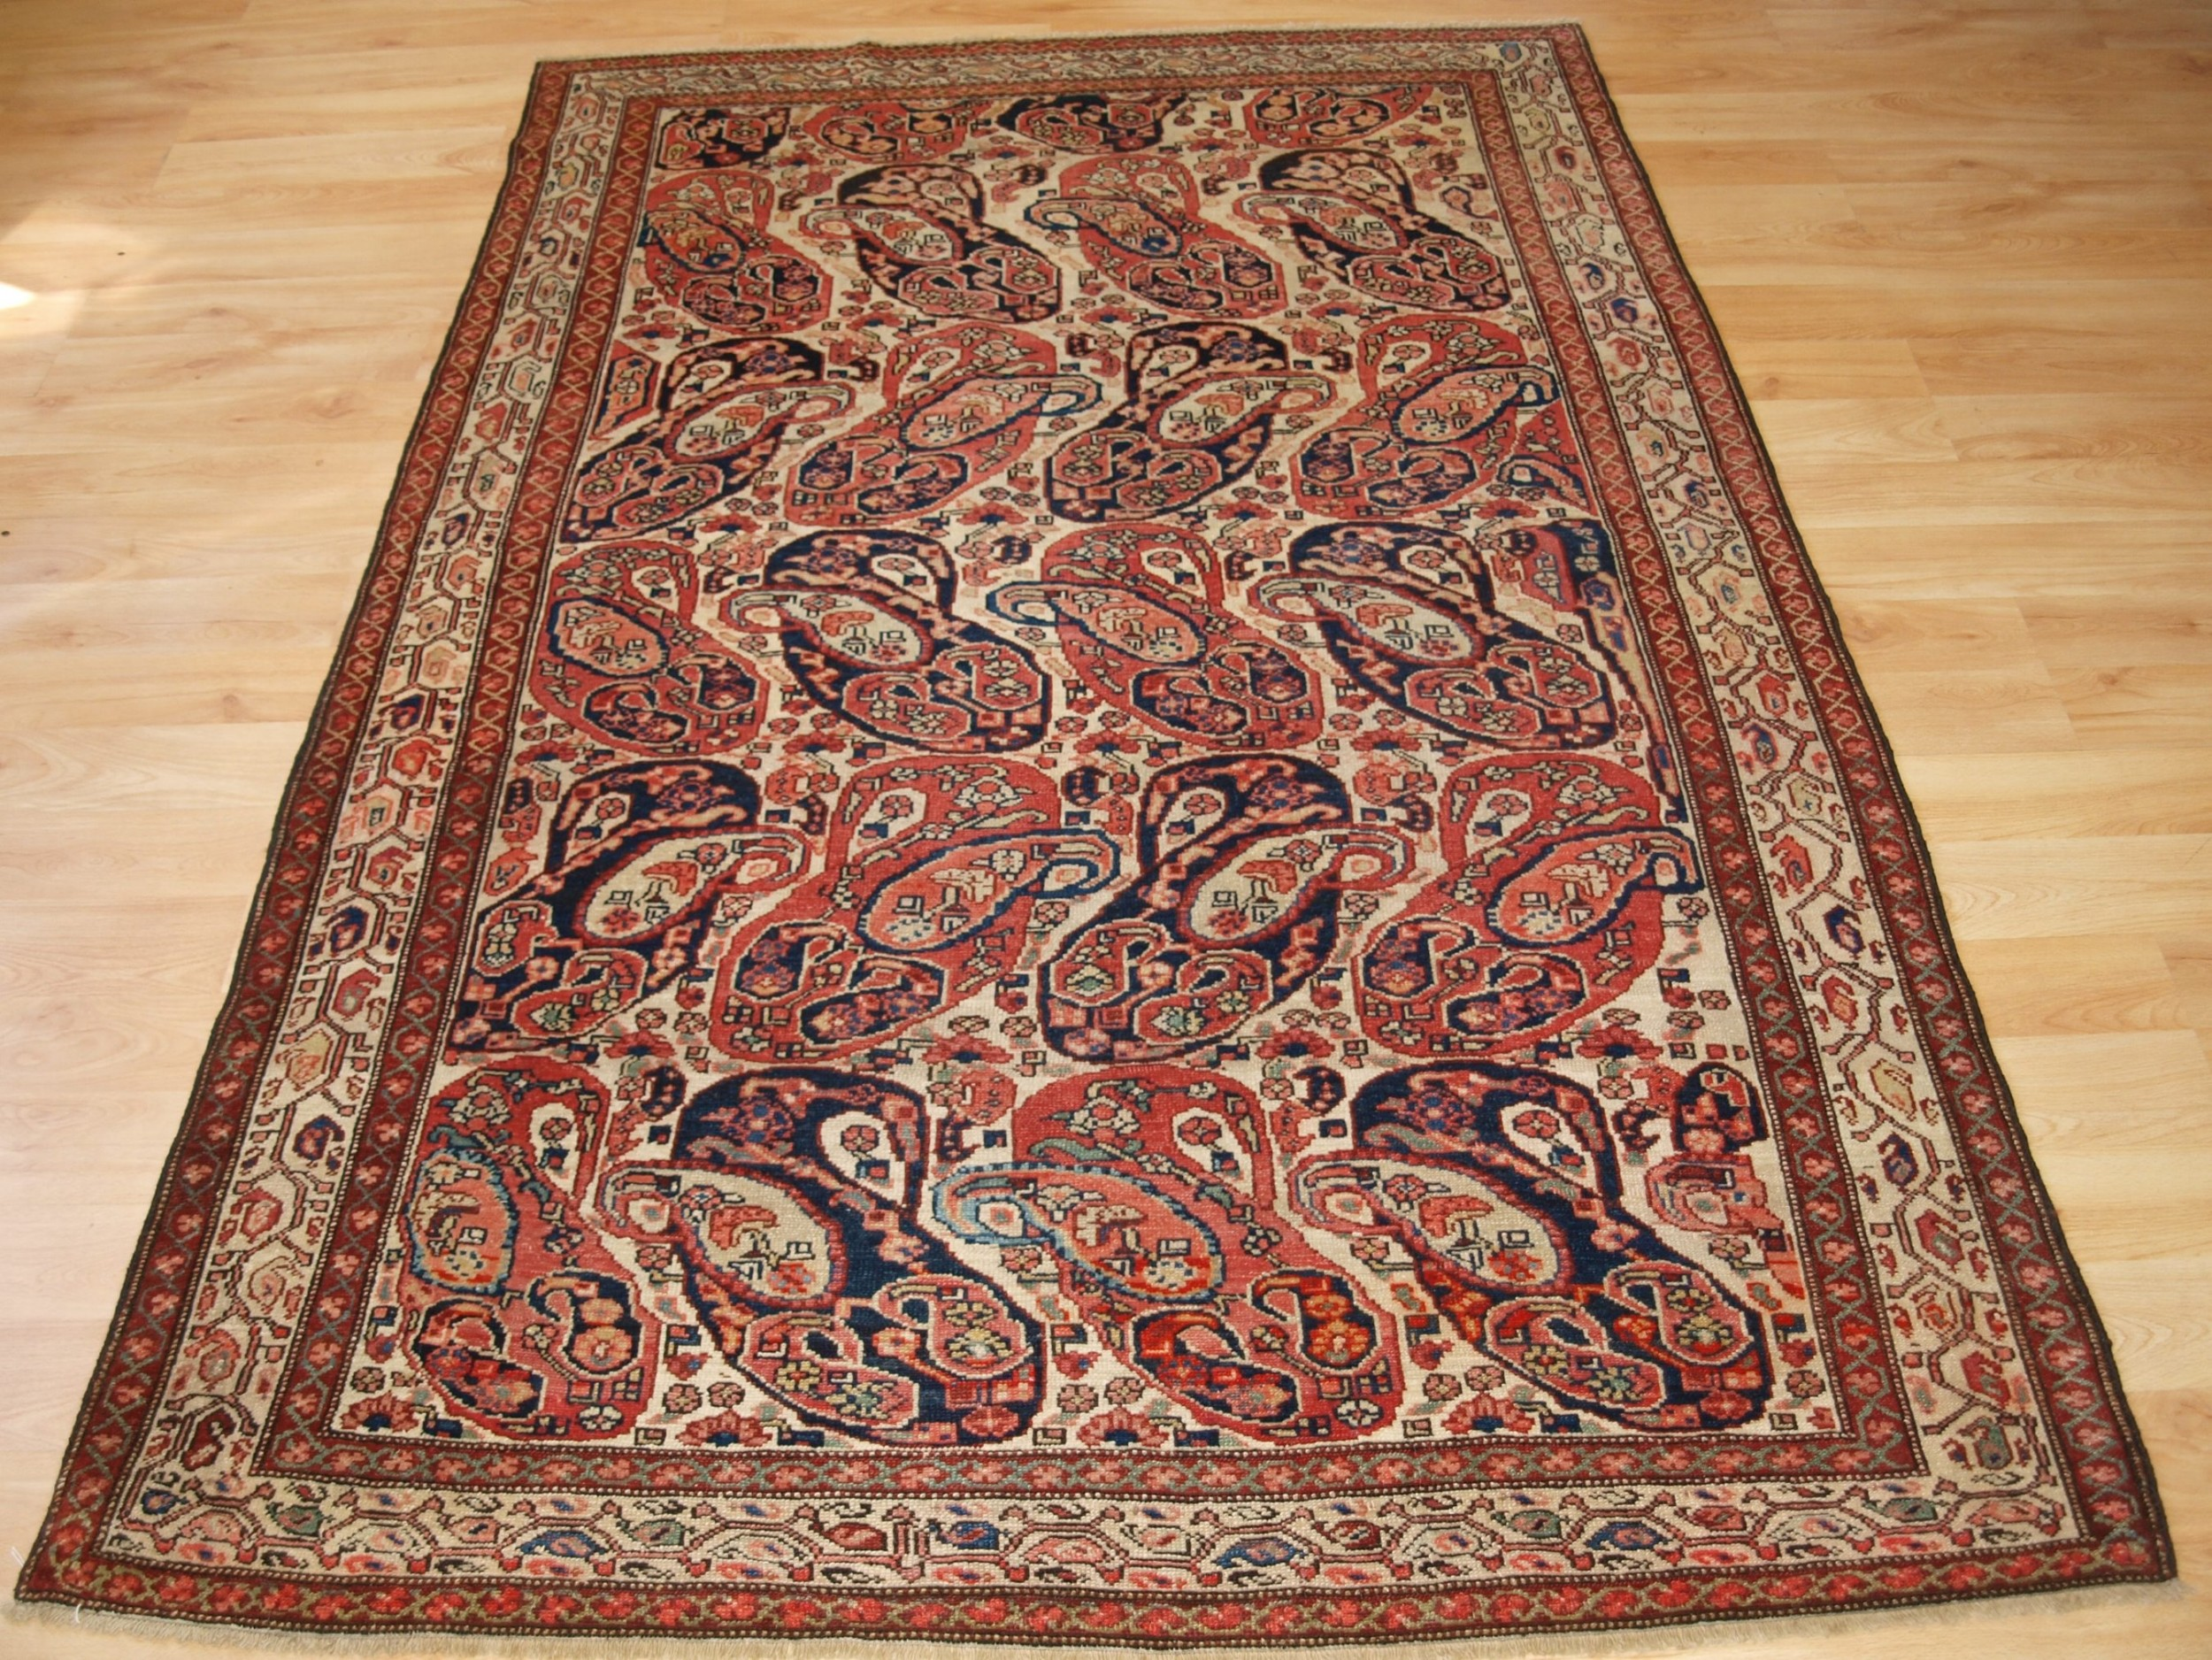 antique malayer village rug mother and child boteh design circa 1900